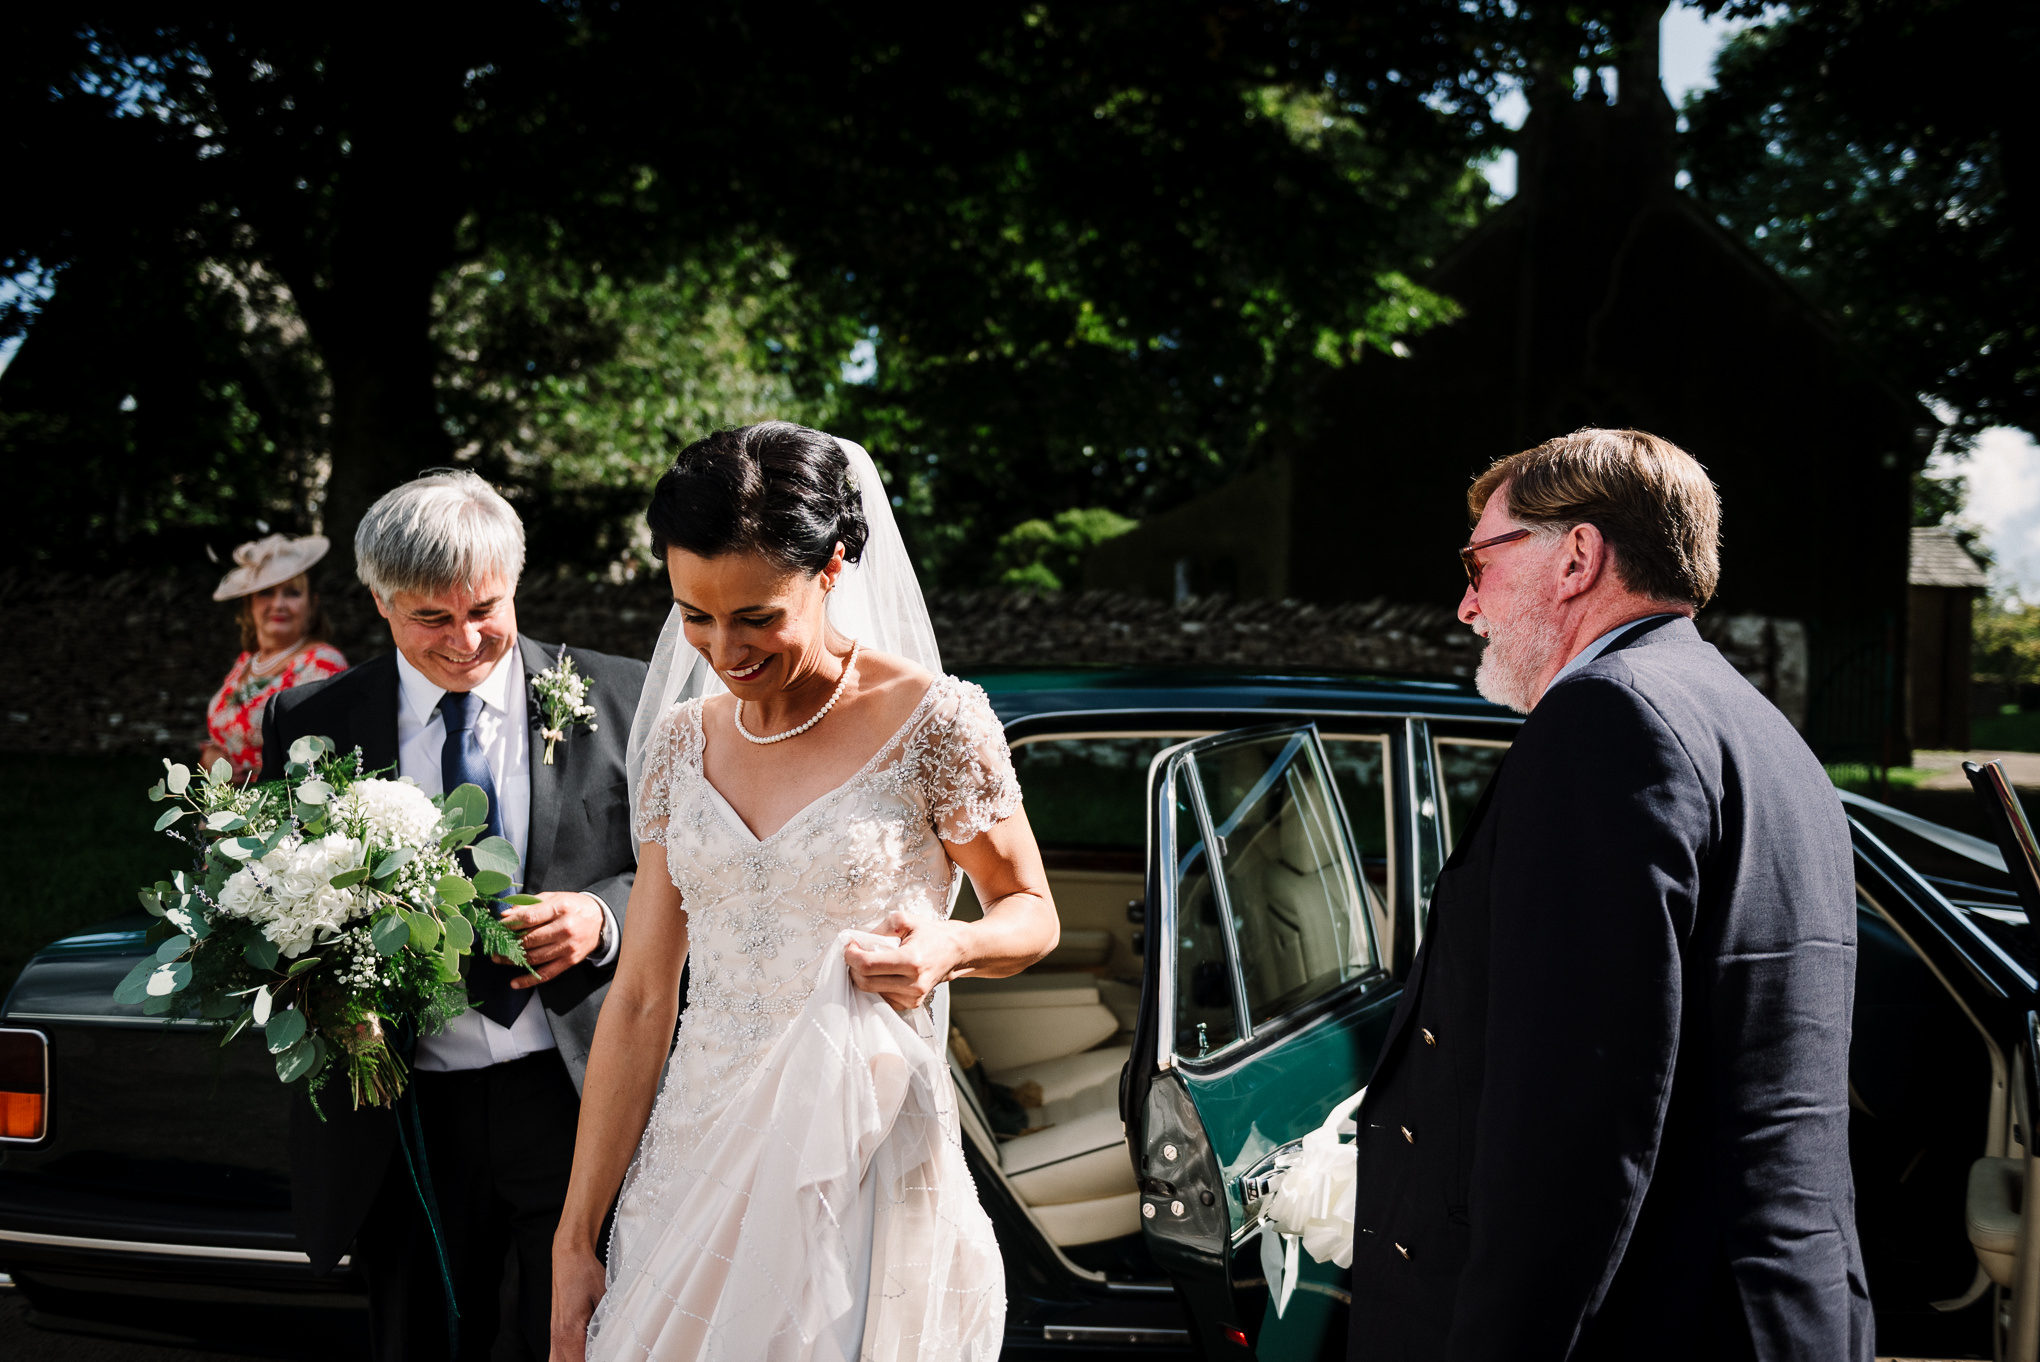 Documentary shot of the bride getting out of the car at church.